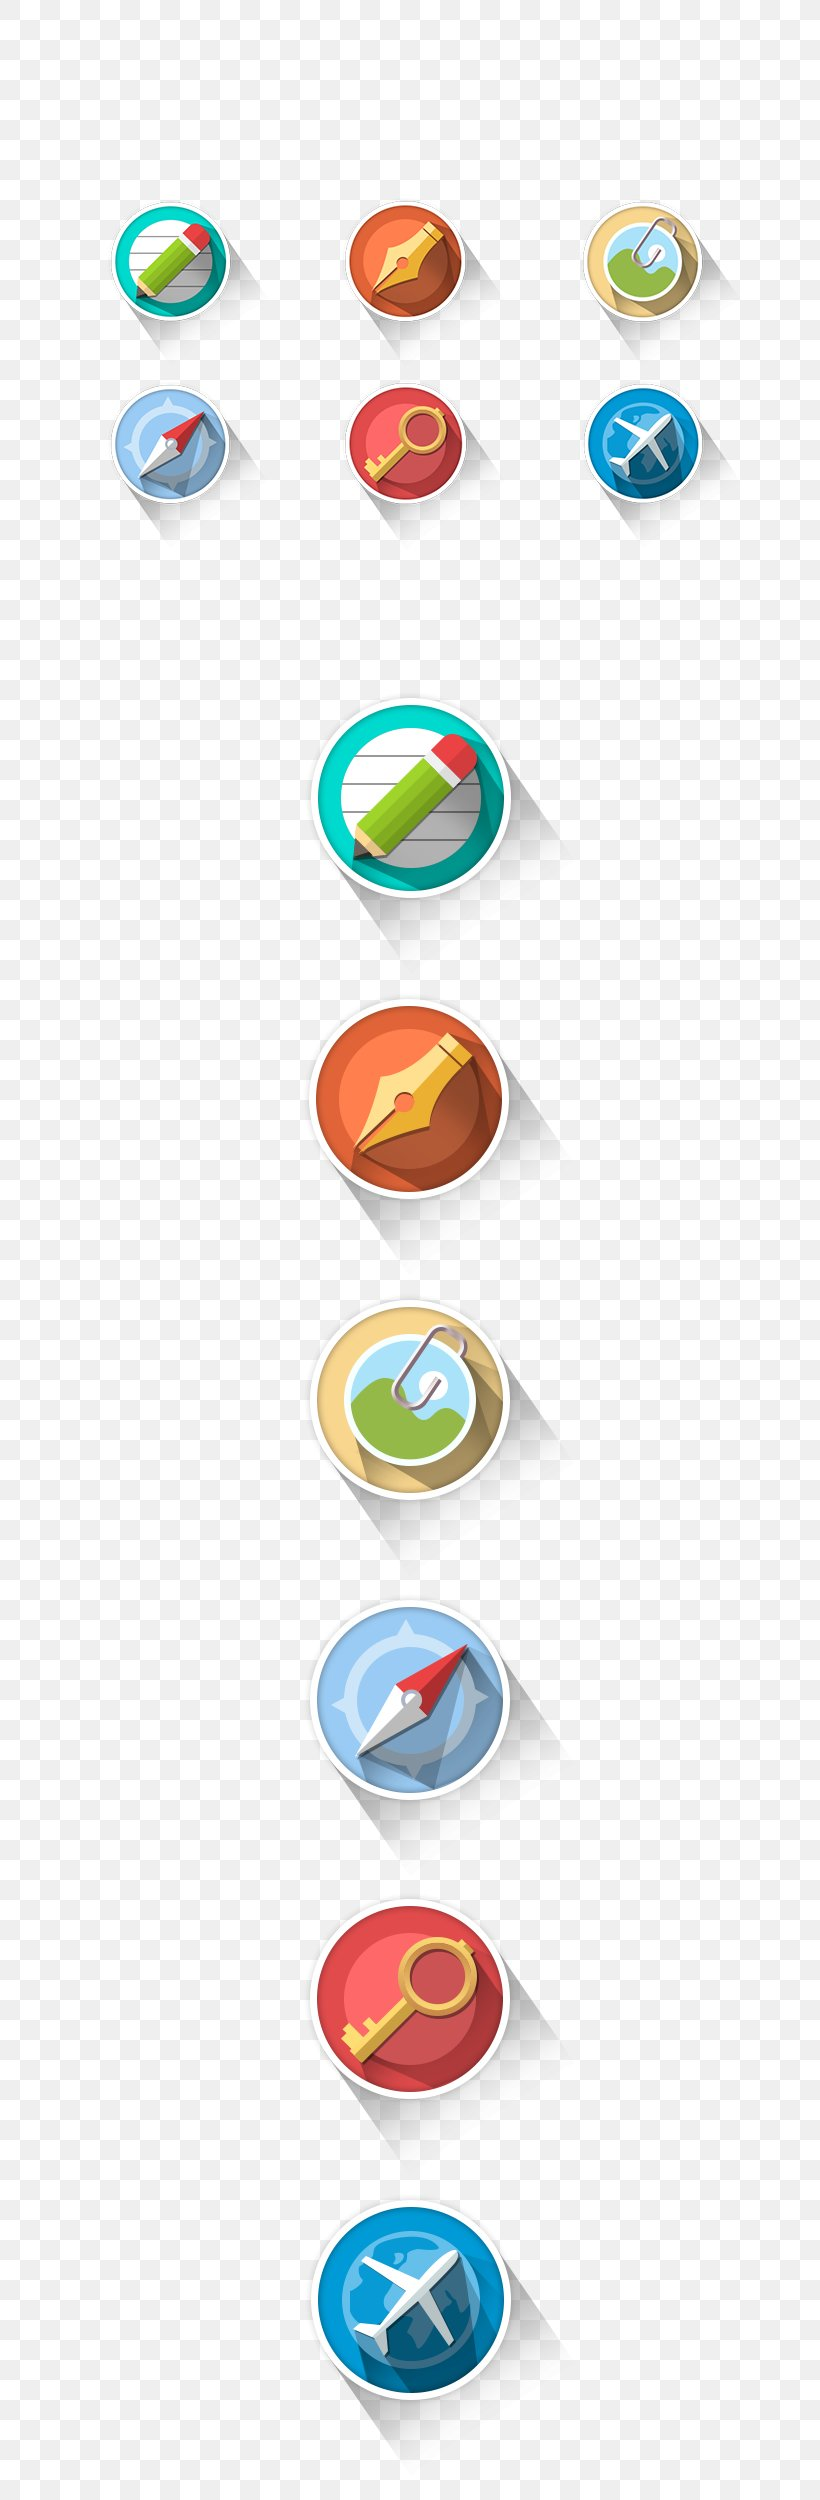 Download Gratis Euclidean Vector Icon, PNG, 800x2500px, Logo, Icon, Product Design, Text Download Free